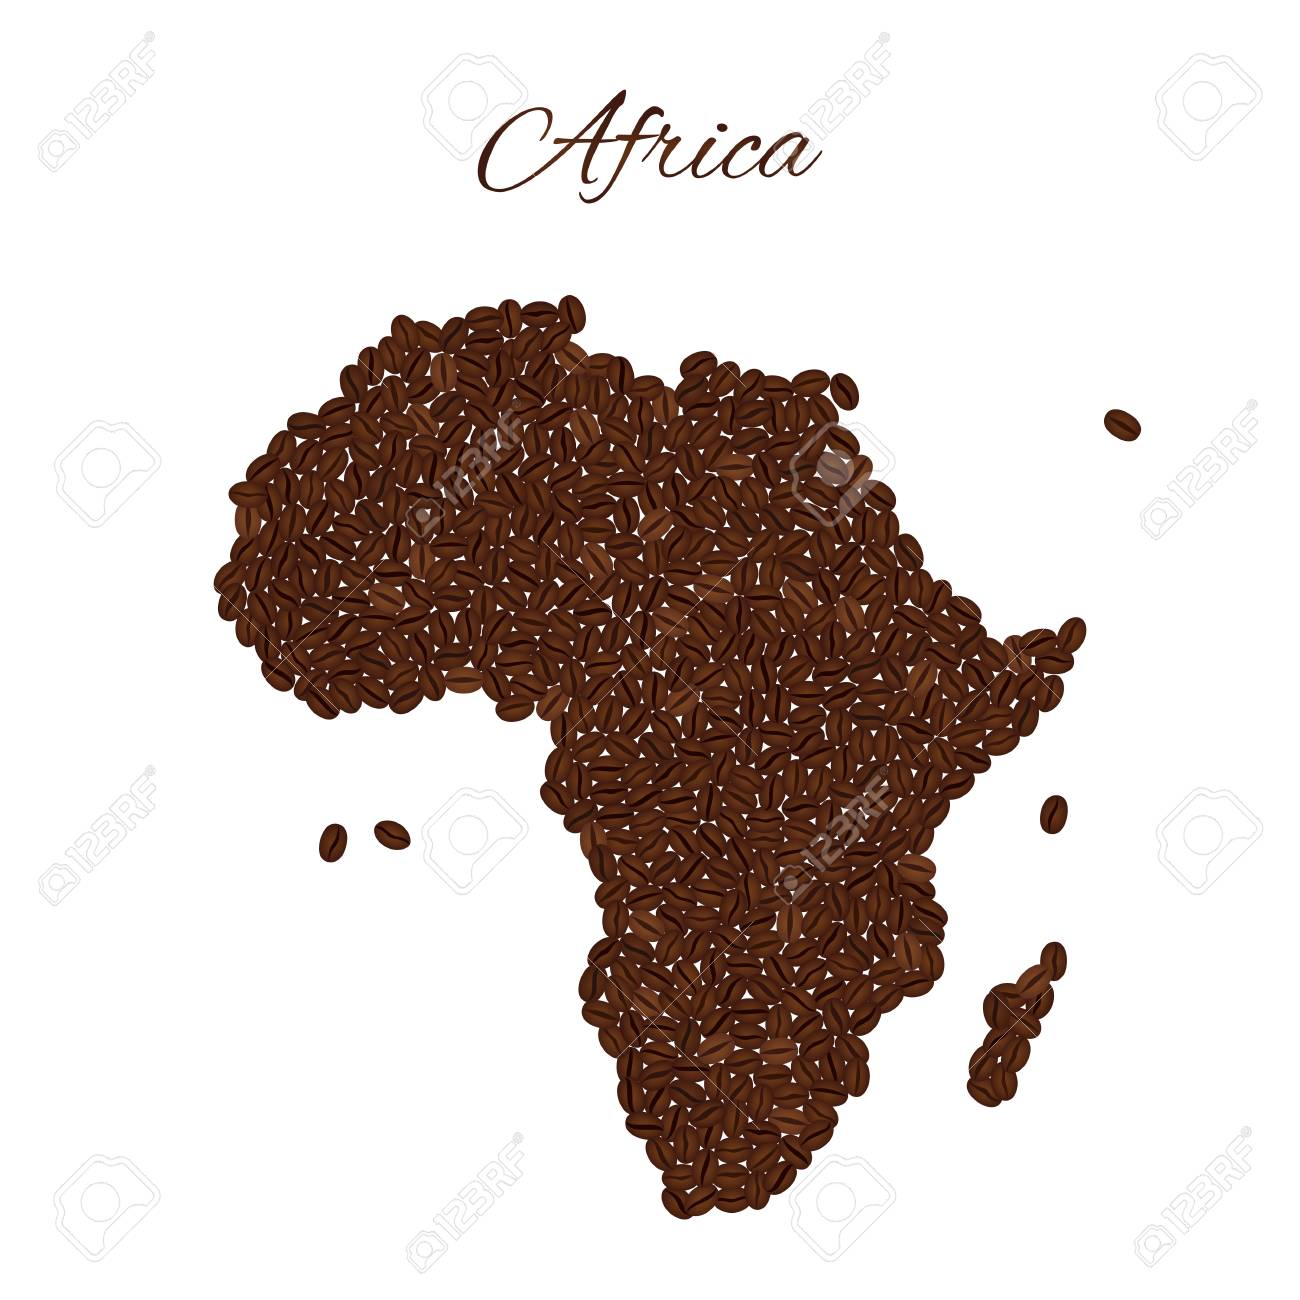 Map Of Africa Created From Coffee Beans Isolated On A White